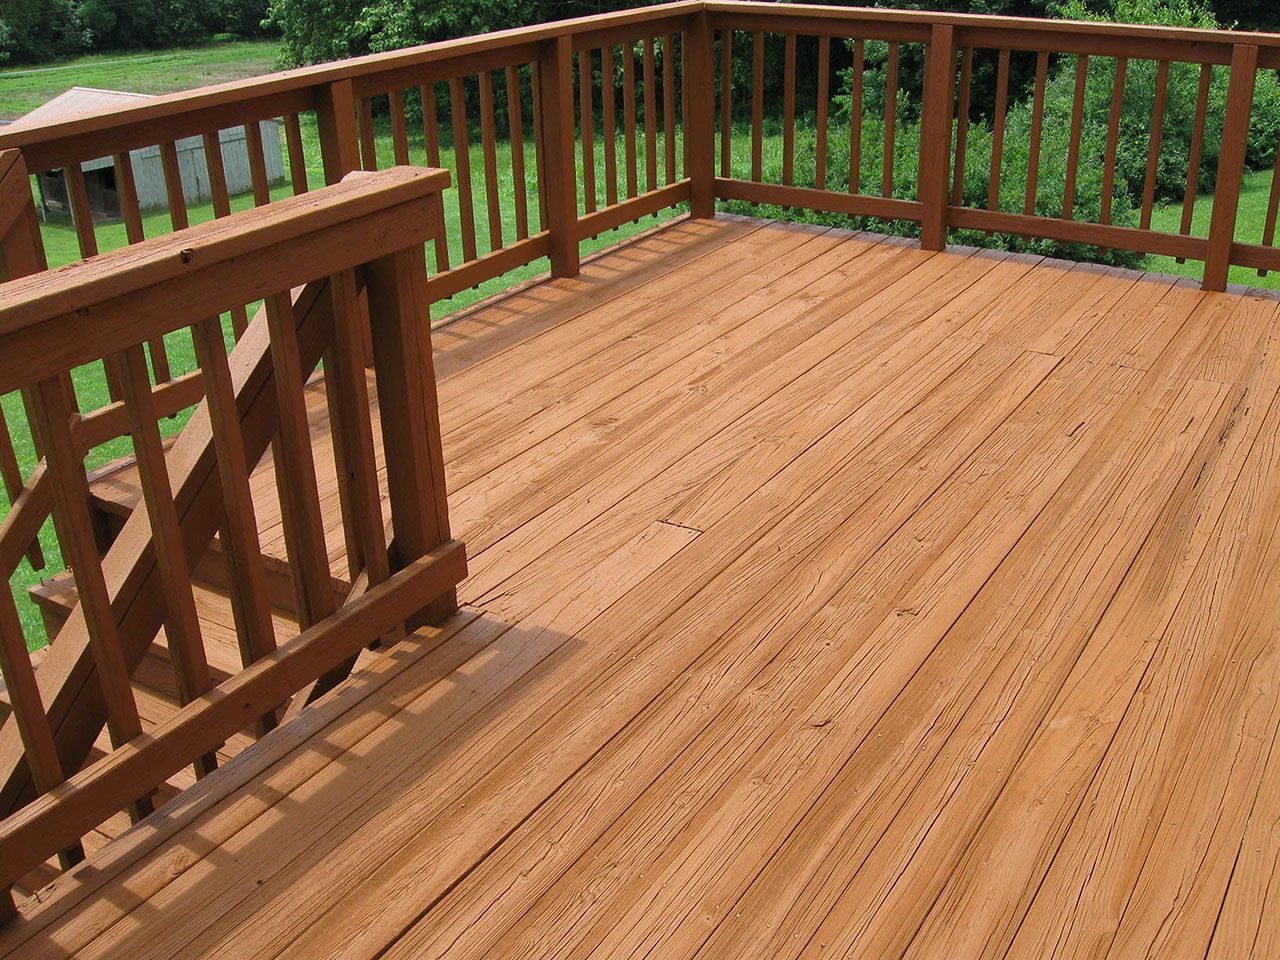 chestnut behr solid color click to close fence stain pinterest